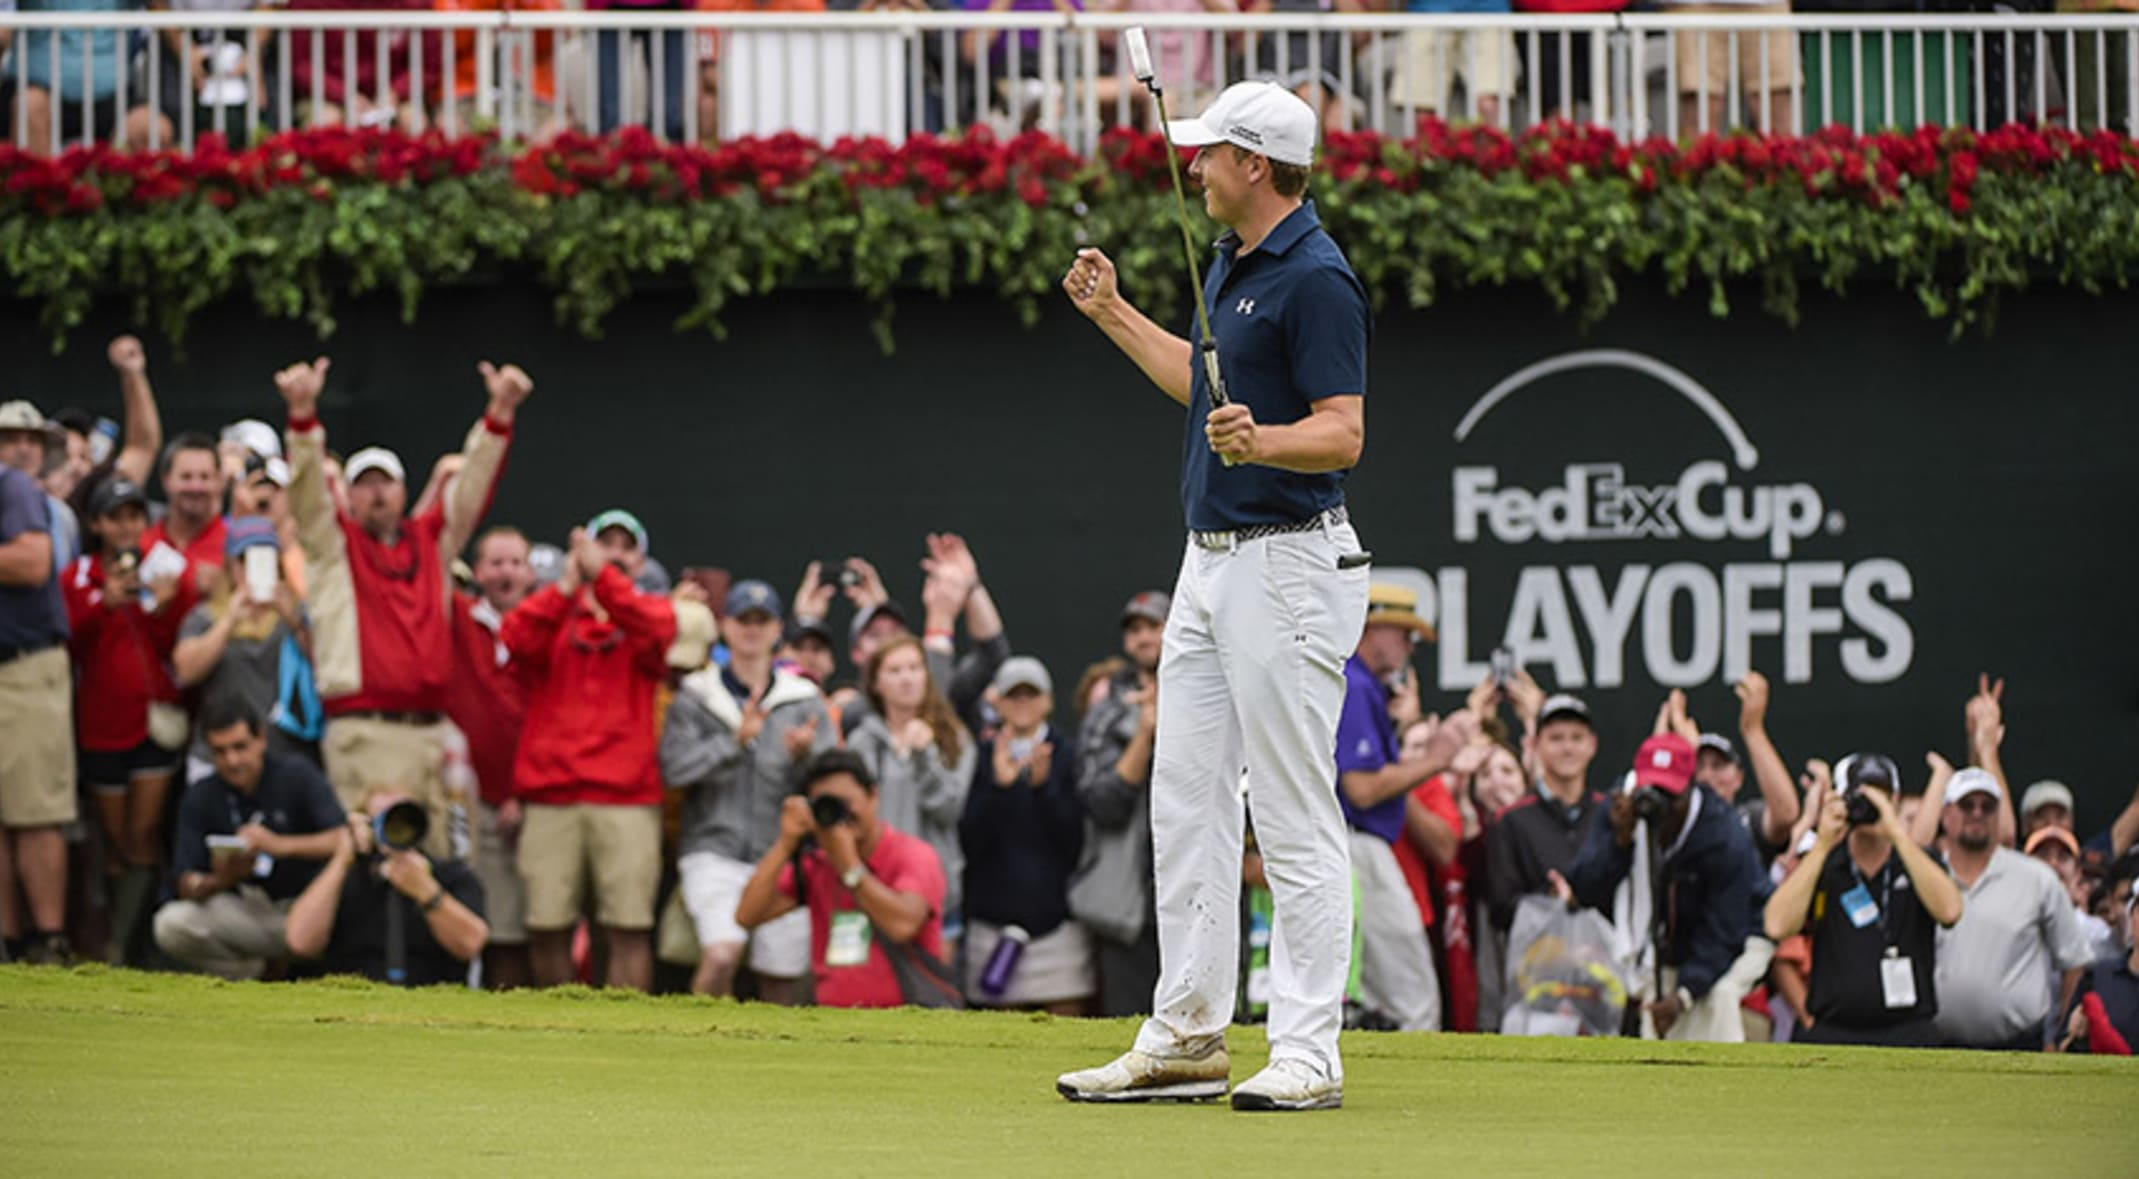 548b6841bc60 Jordan Spieth finished either first or second in 36 percent of his starts  this season.